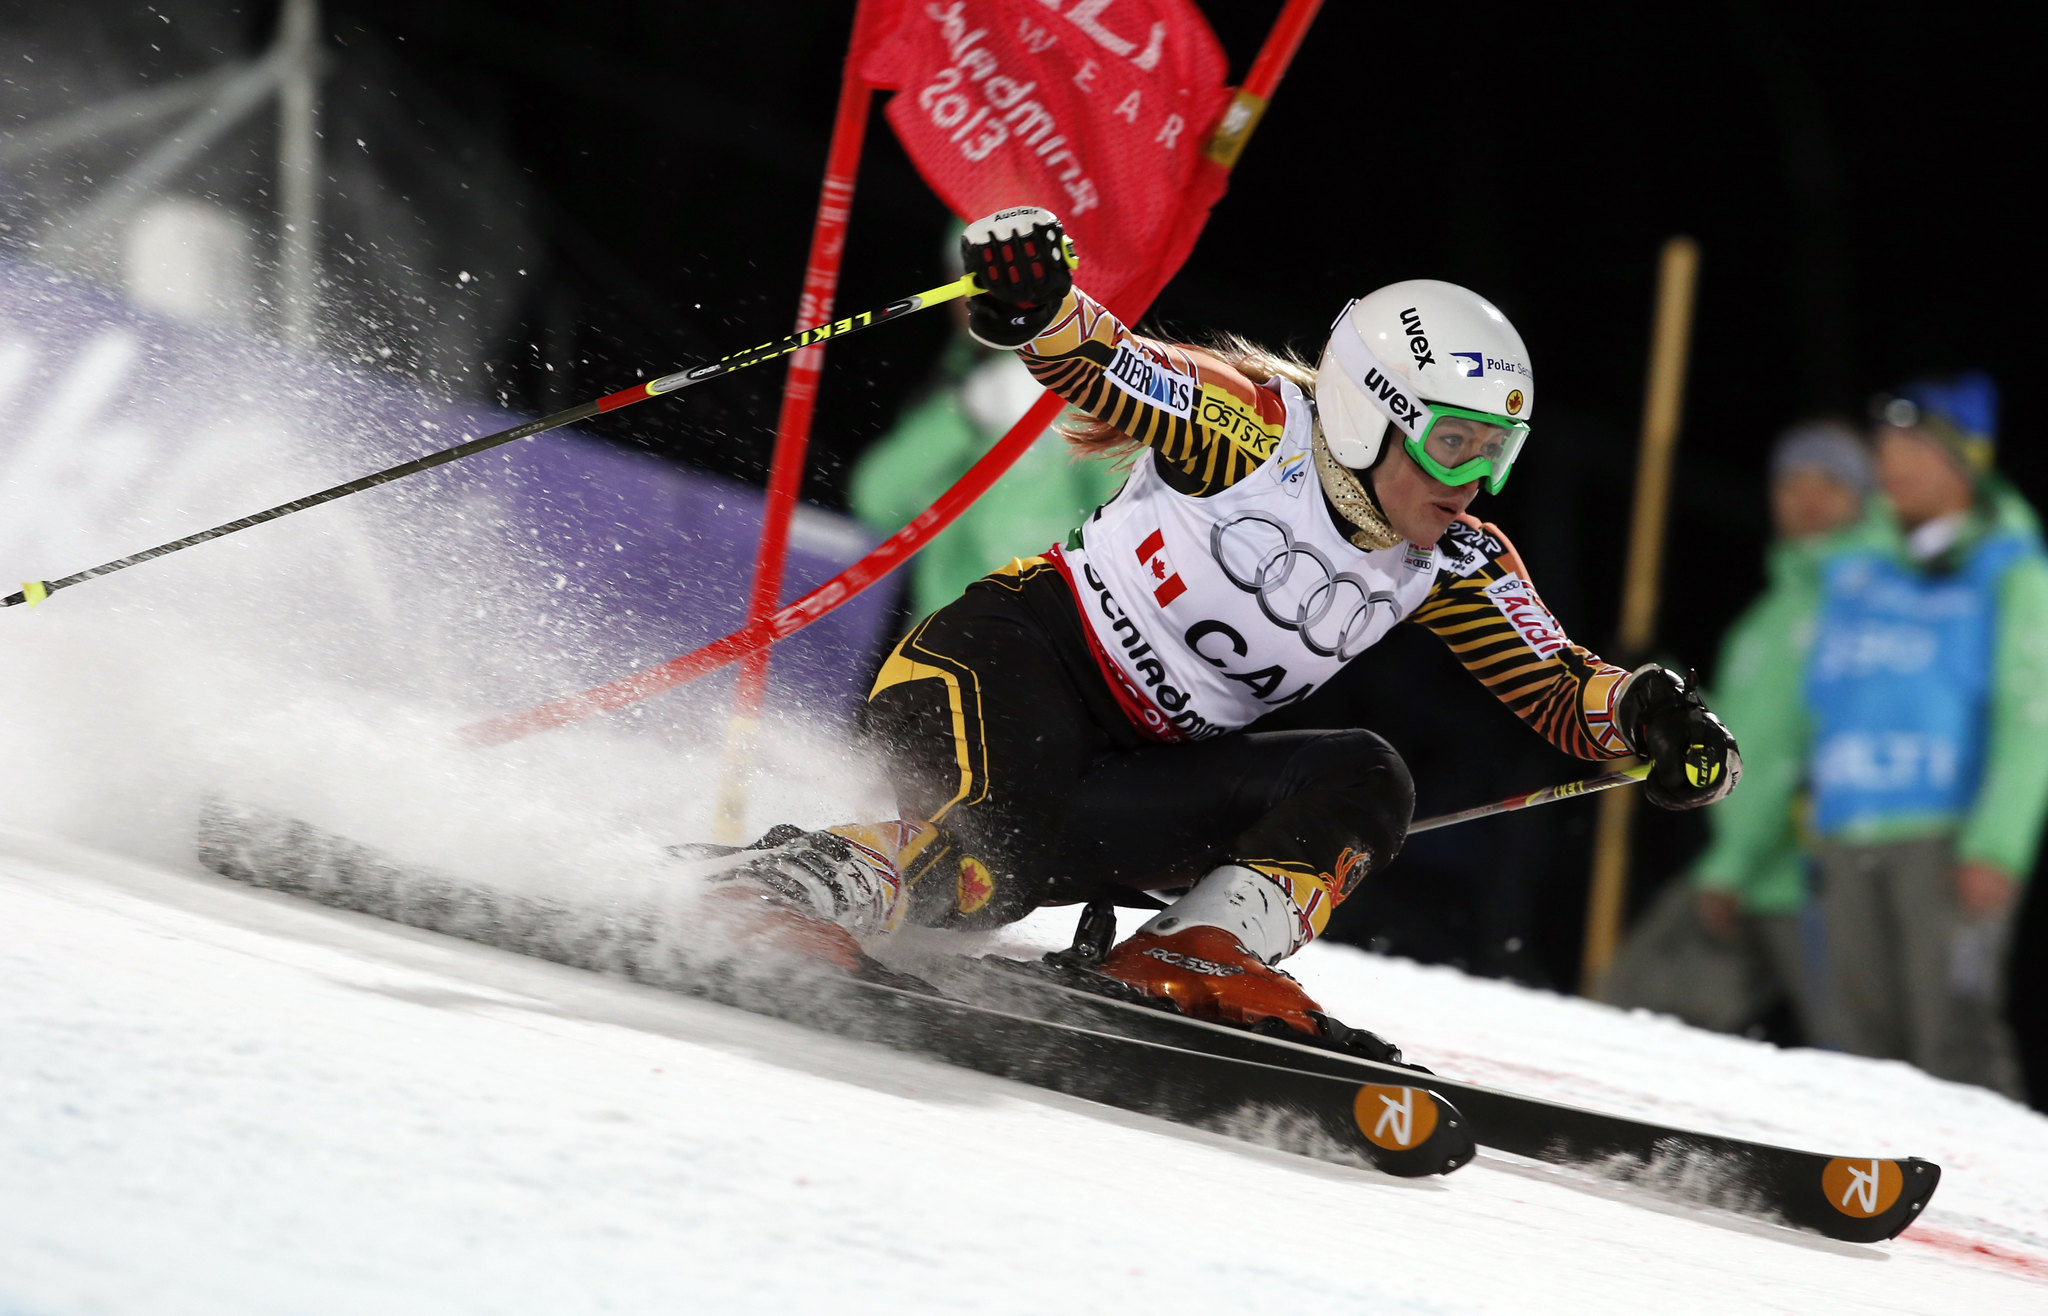 Erin Mielzynski edges out slalom superstar Maria Hoefl-Riesch by one one-hundredth of a second to win her run in the team event at world championships in Schladming, Austria.